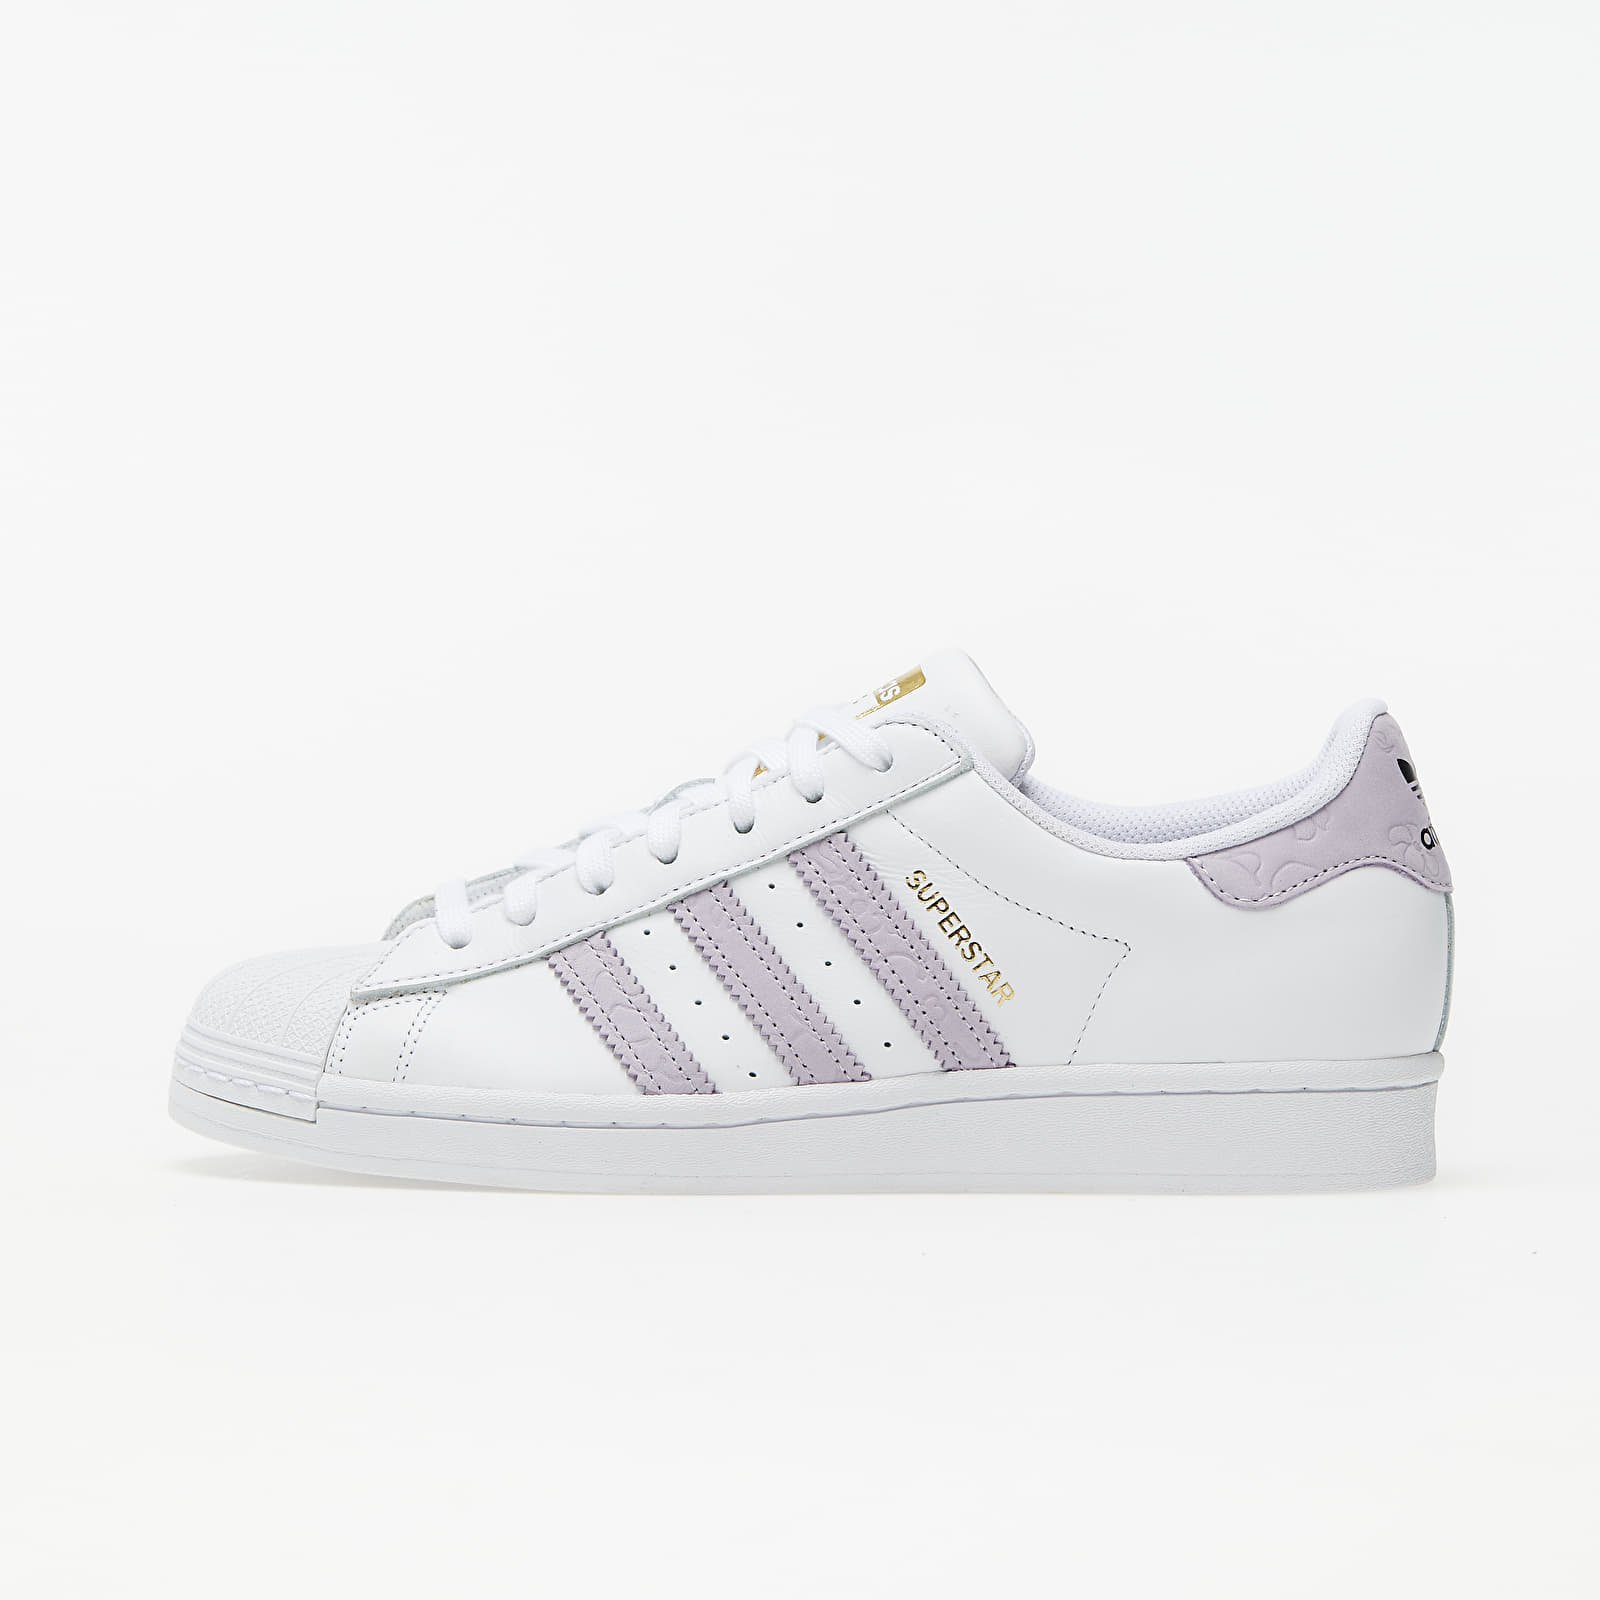 adidas Superstar W Ftw White/ Core Black/ Ftw White EUR 39 1/3